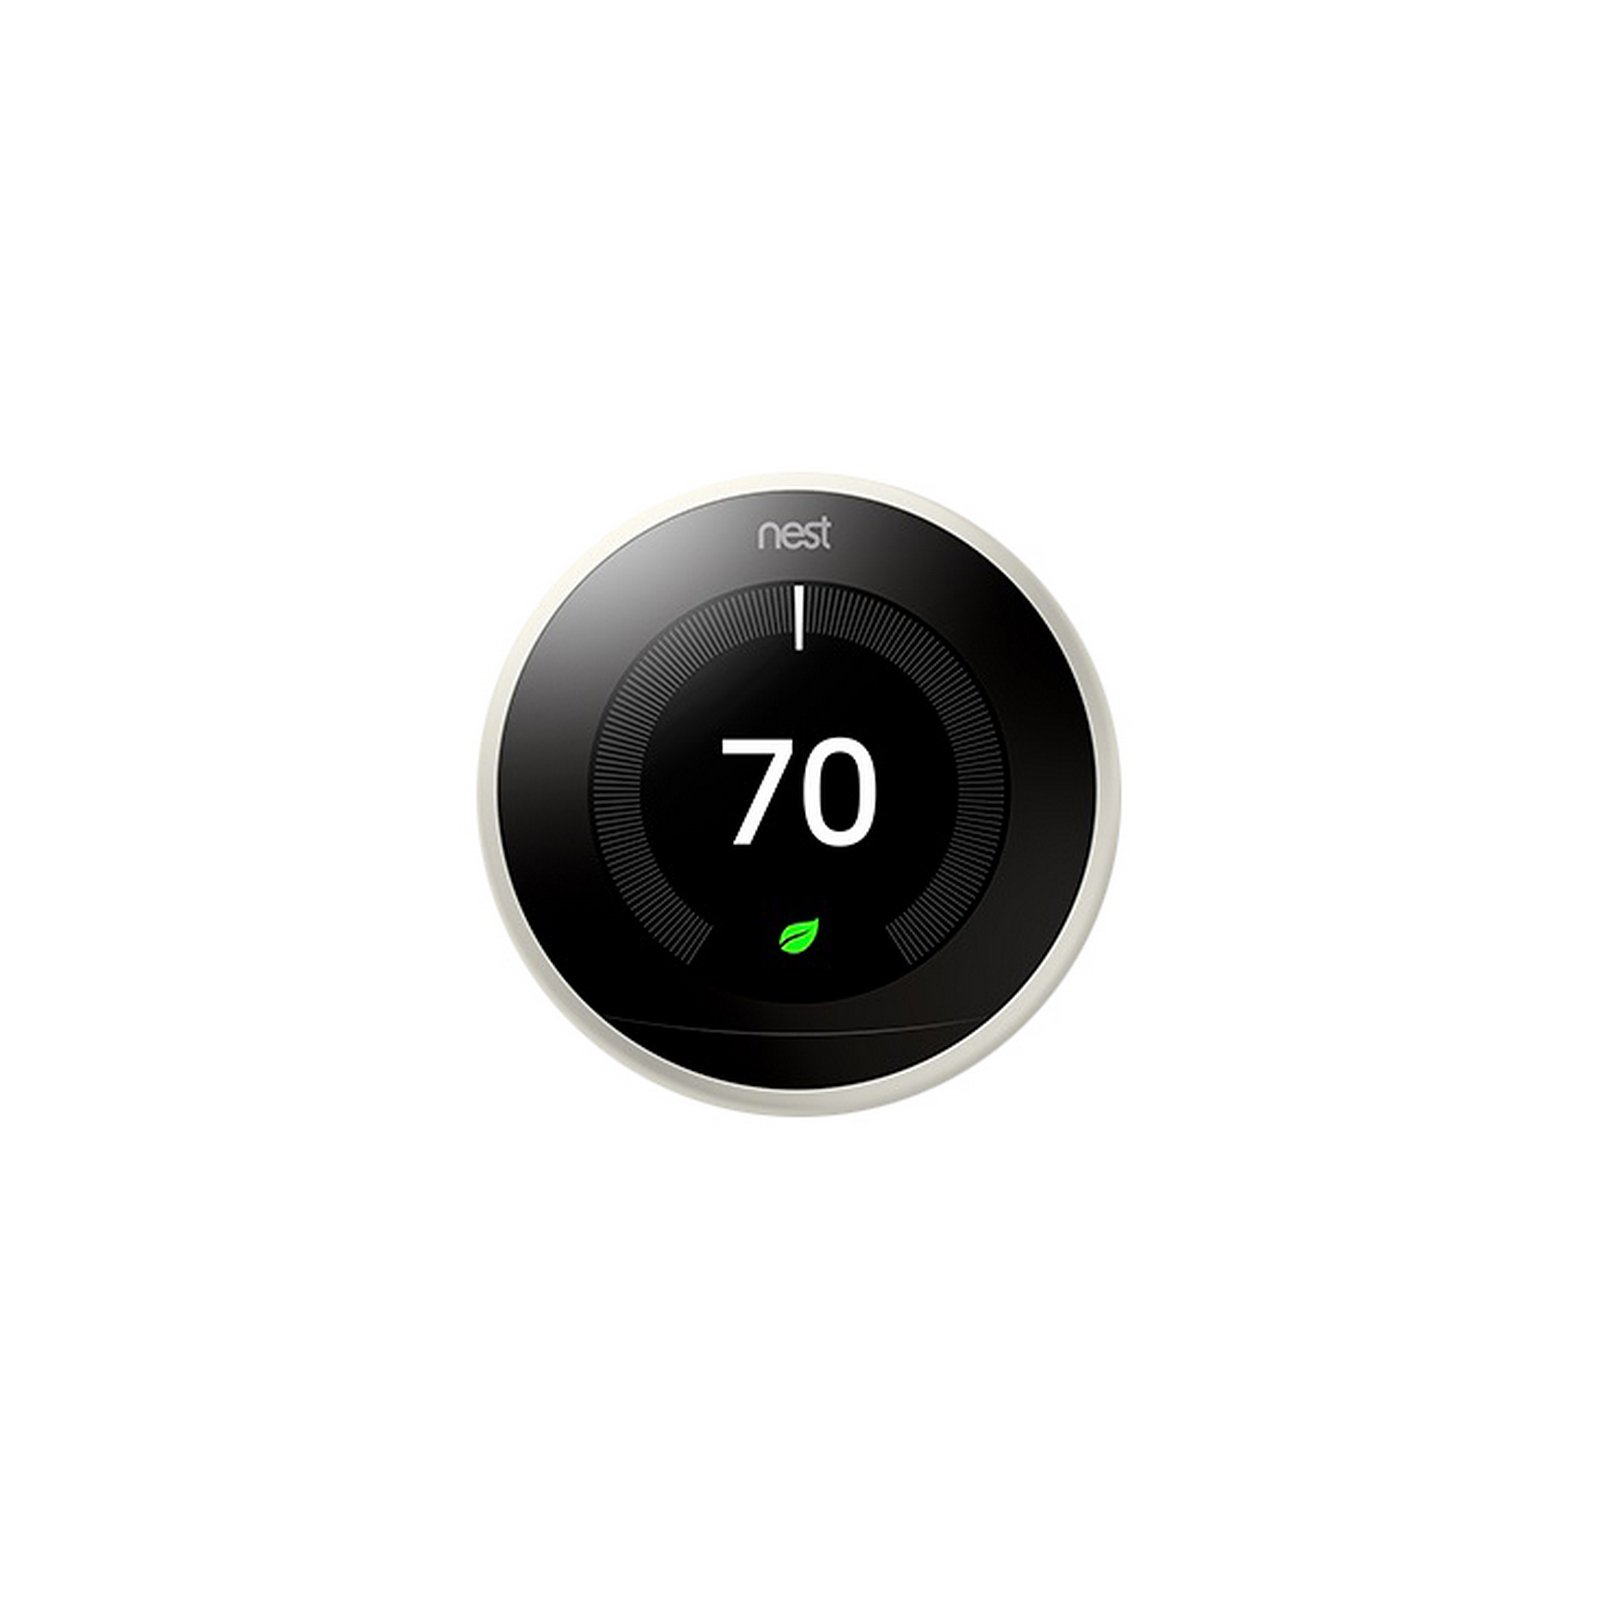 Nest 3rd Generation Programmable Wi-Fi Smart Learning Thermostat T3017US - White by Nest Labs